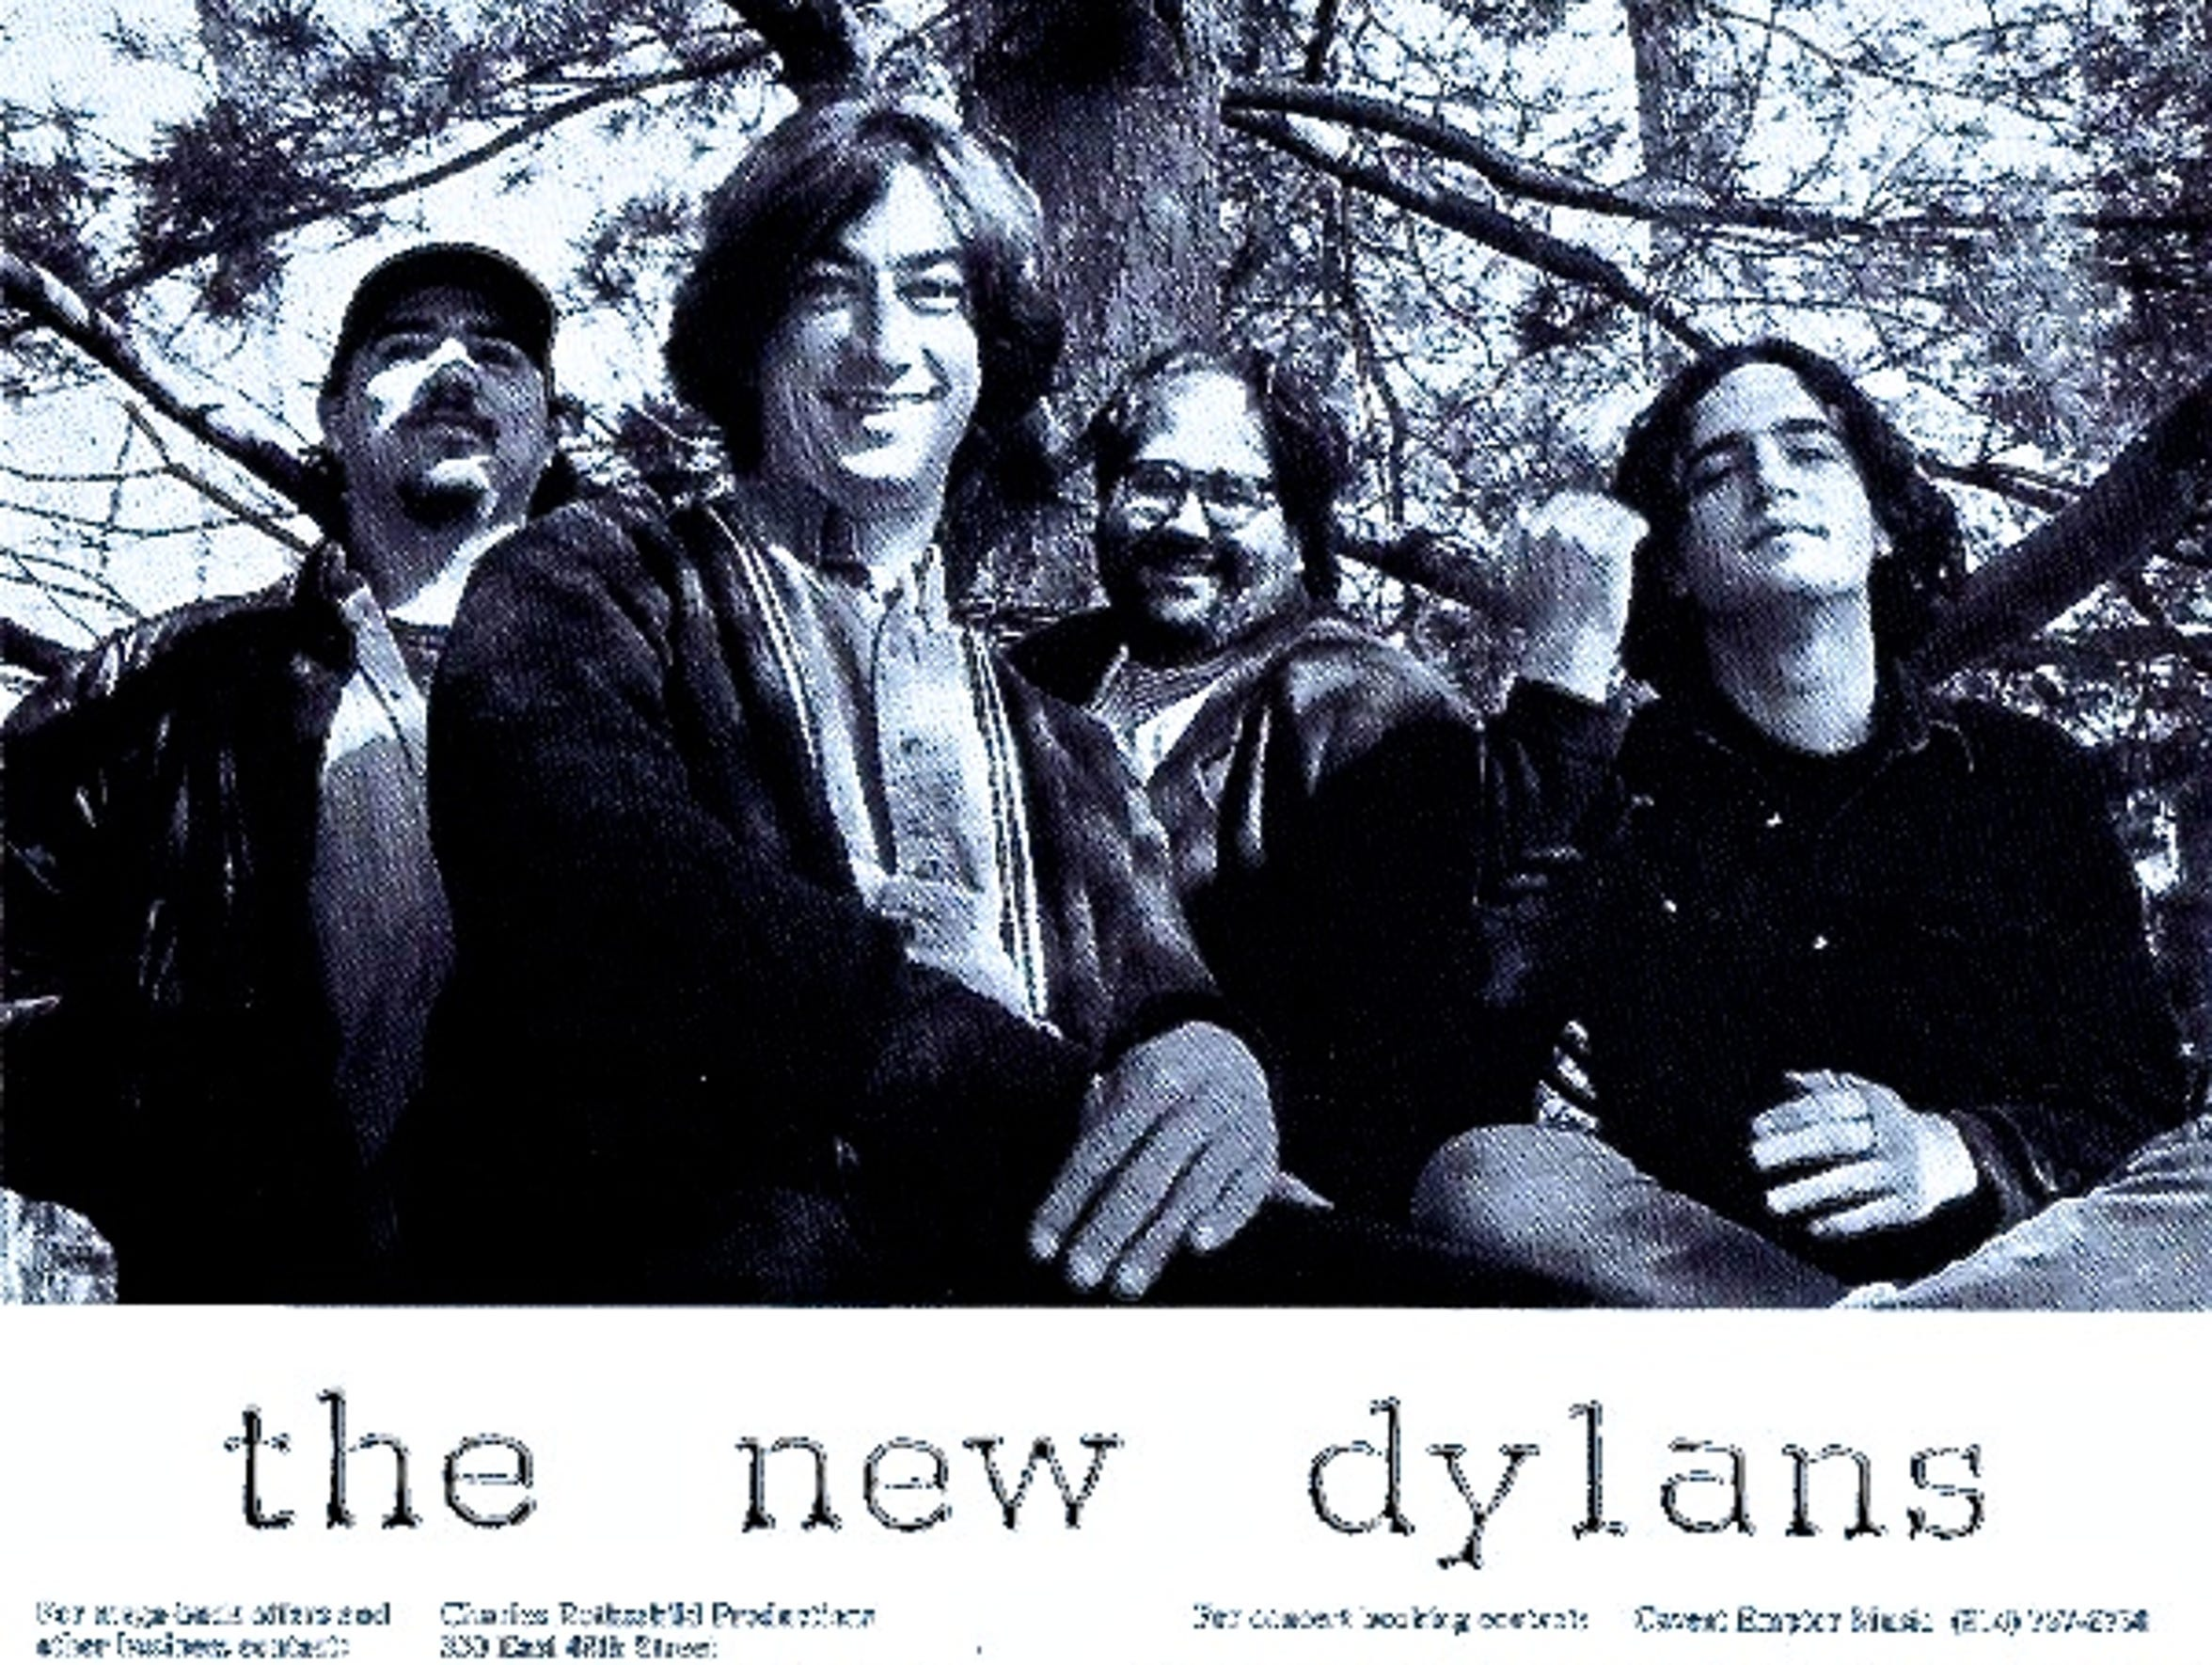 New Dylans, 1996, group photo in Rodchester, New York,